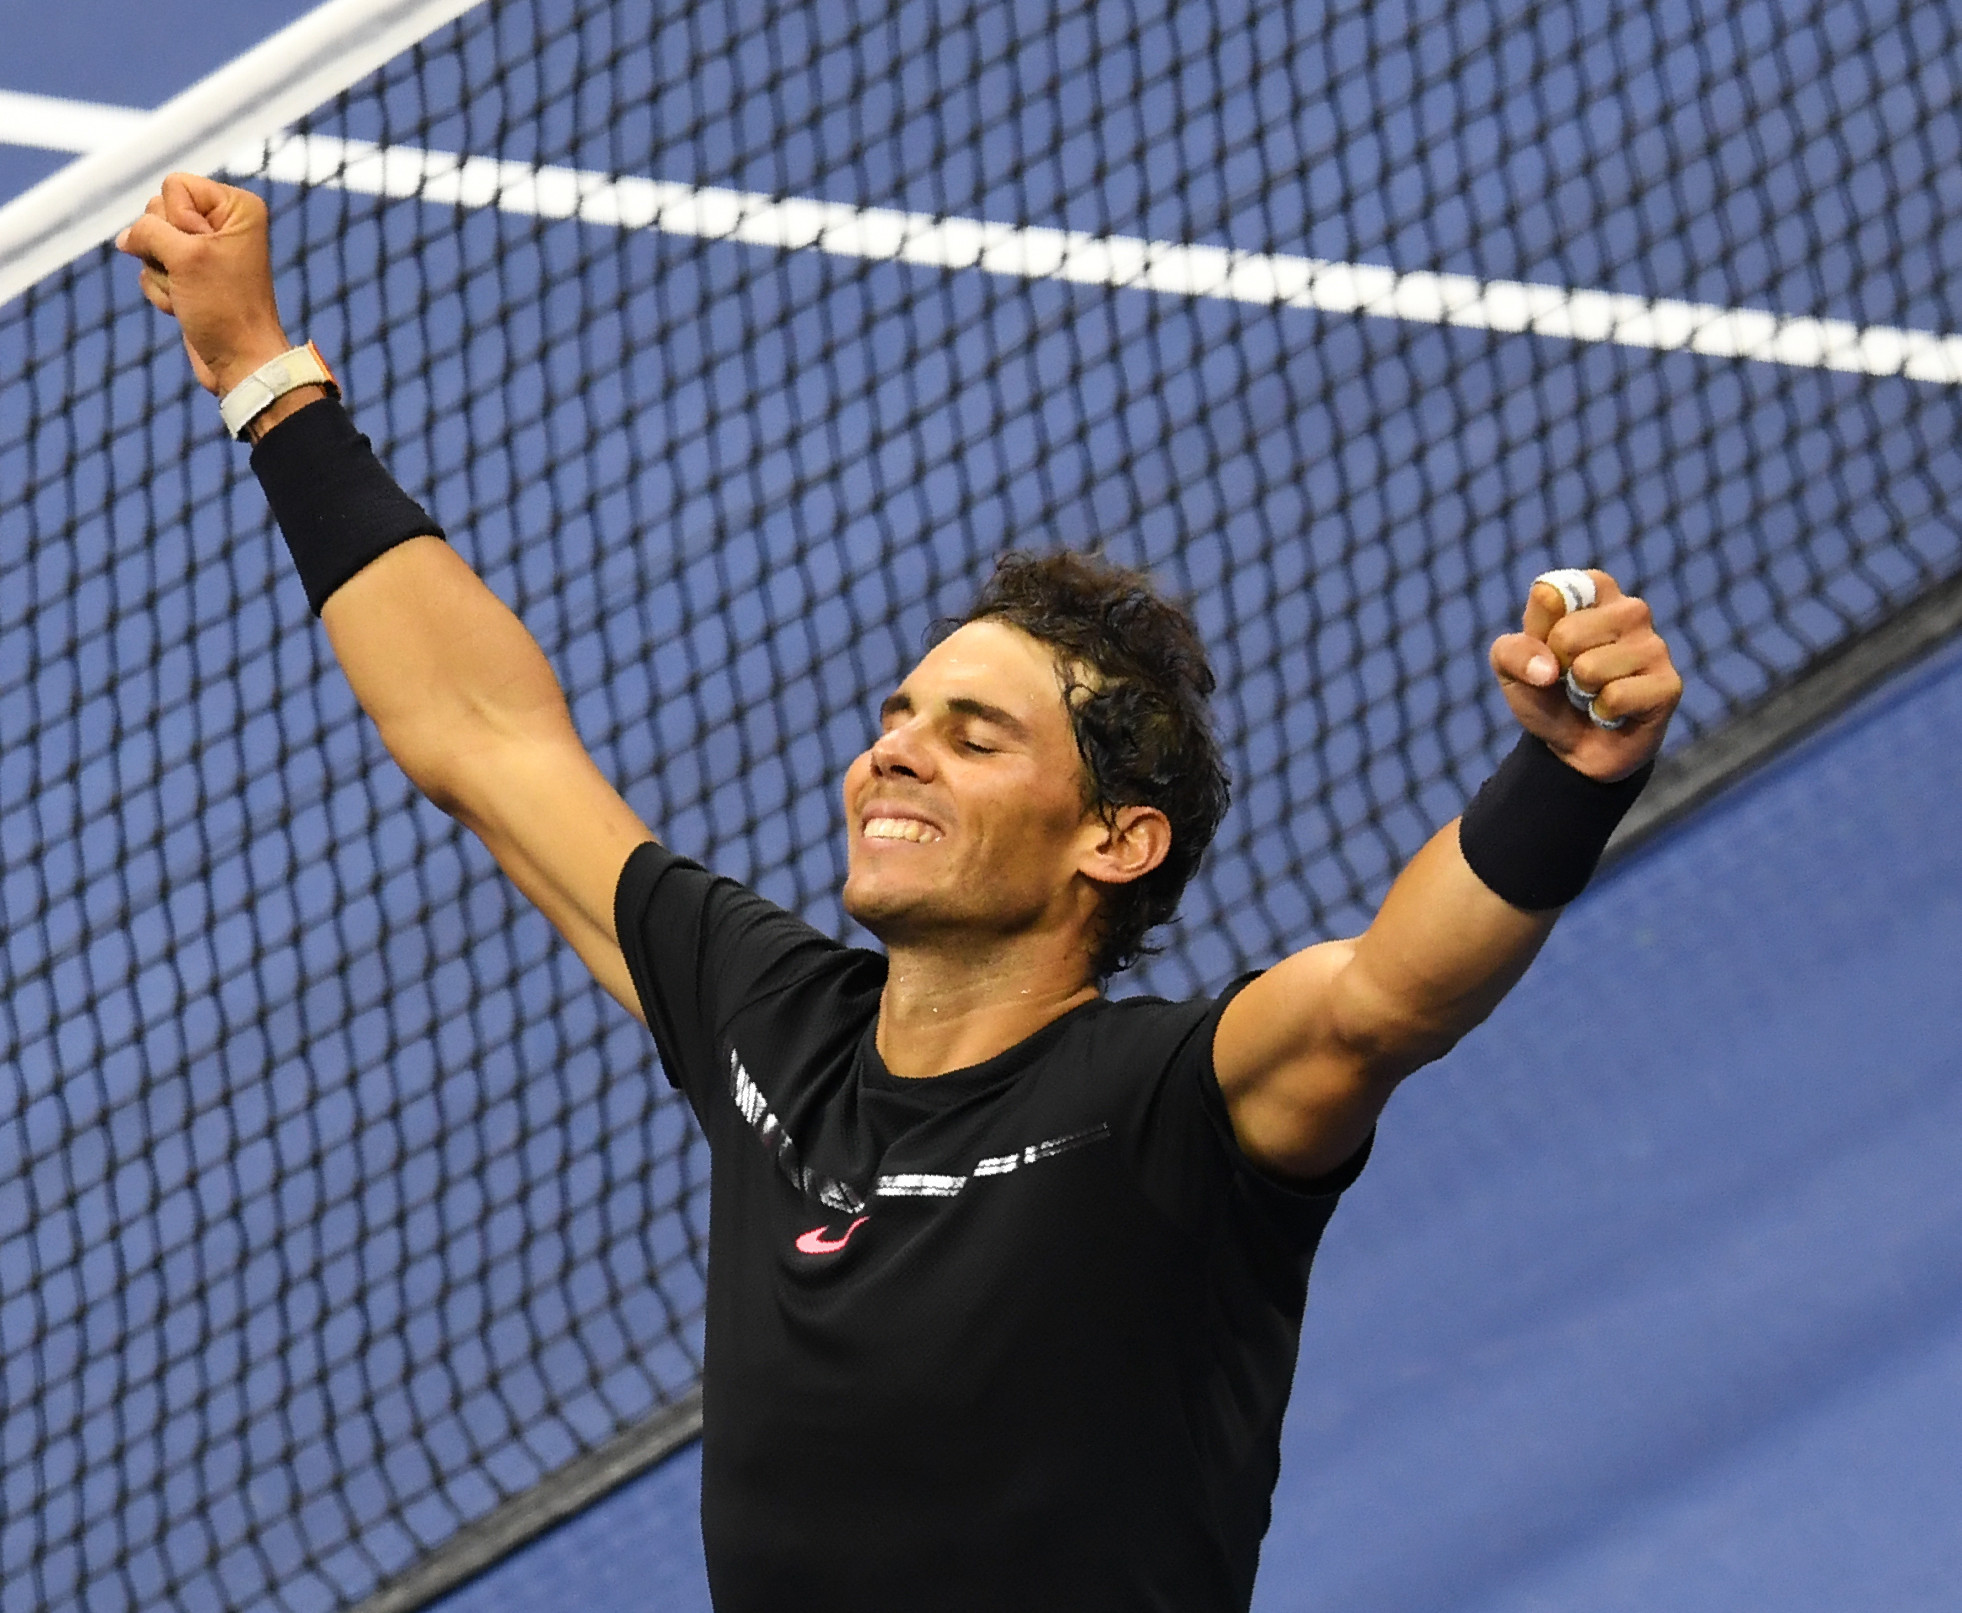 Nadal beats Del Potro to set up US Open final with Anderson